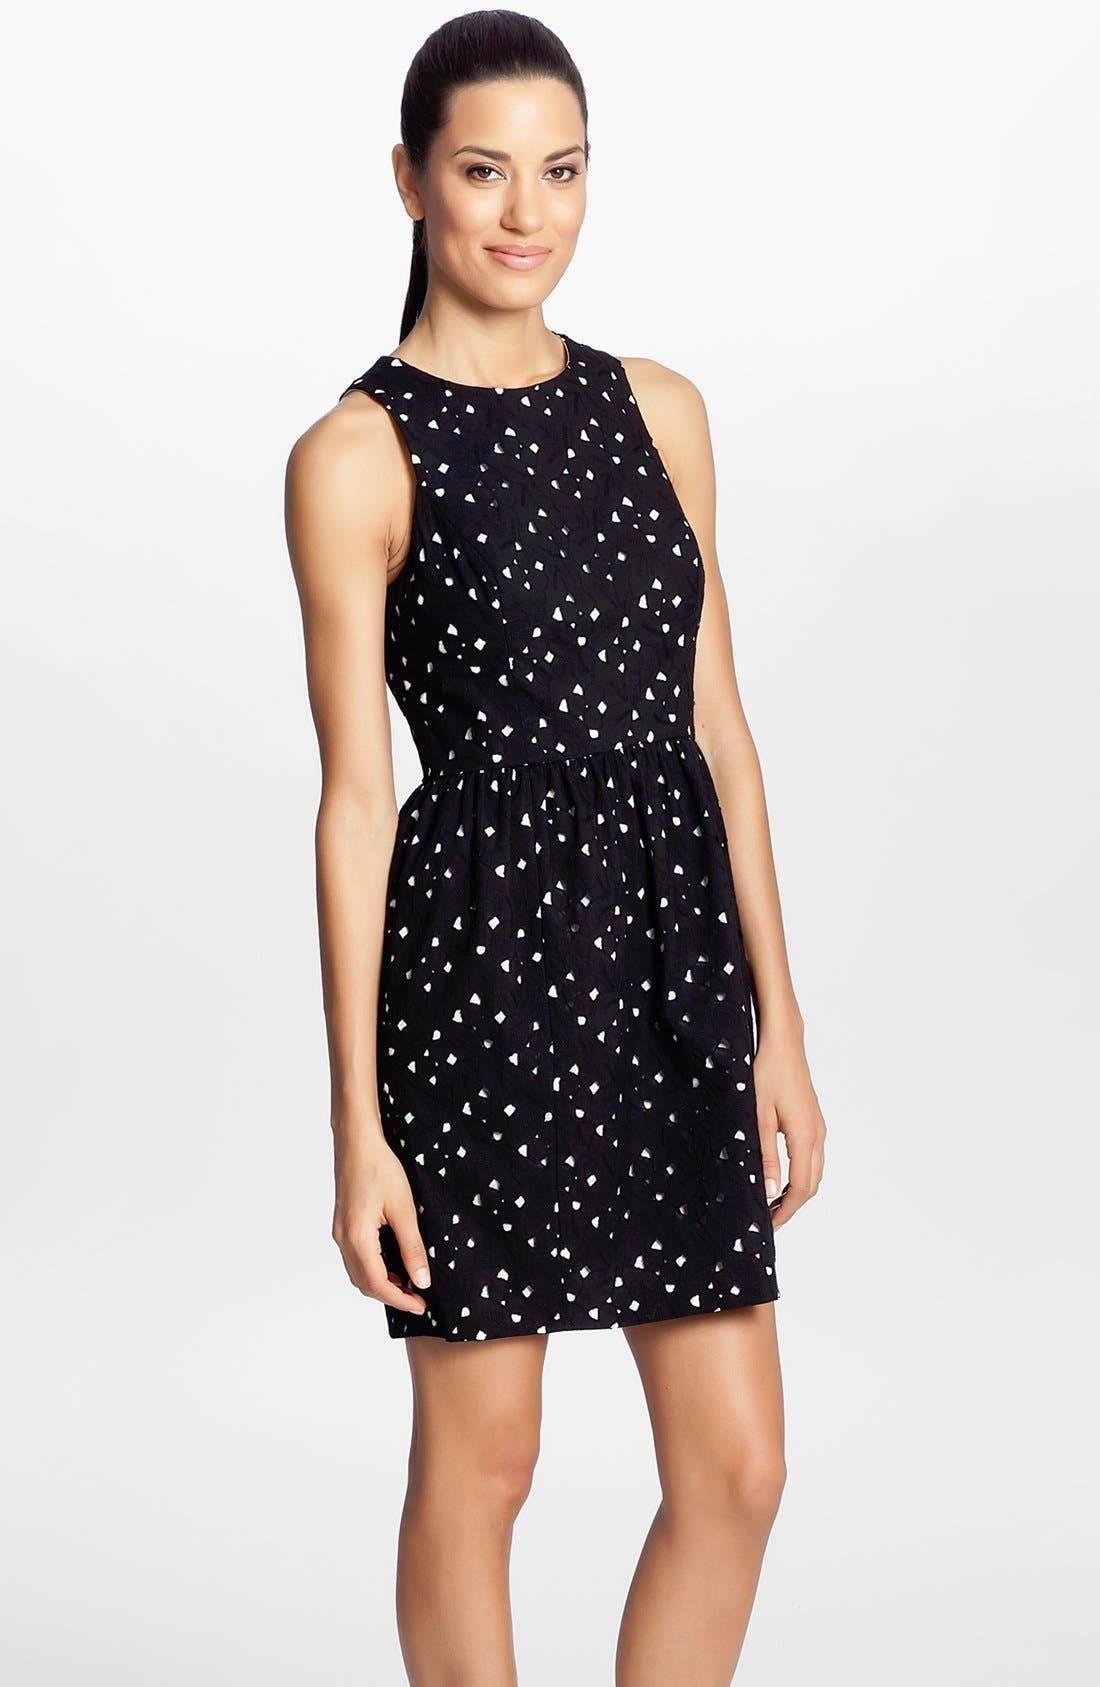 Alternate Image 1 Selected - Cynthia Steffe 'Peyton' Eyelet Cotton Fit & Flare Dress